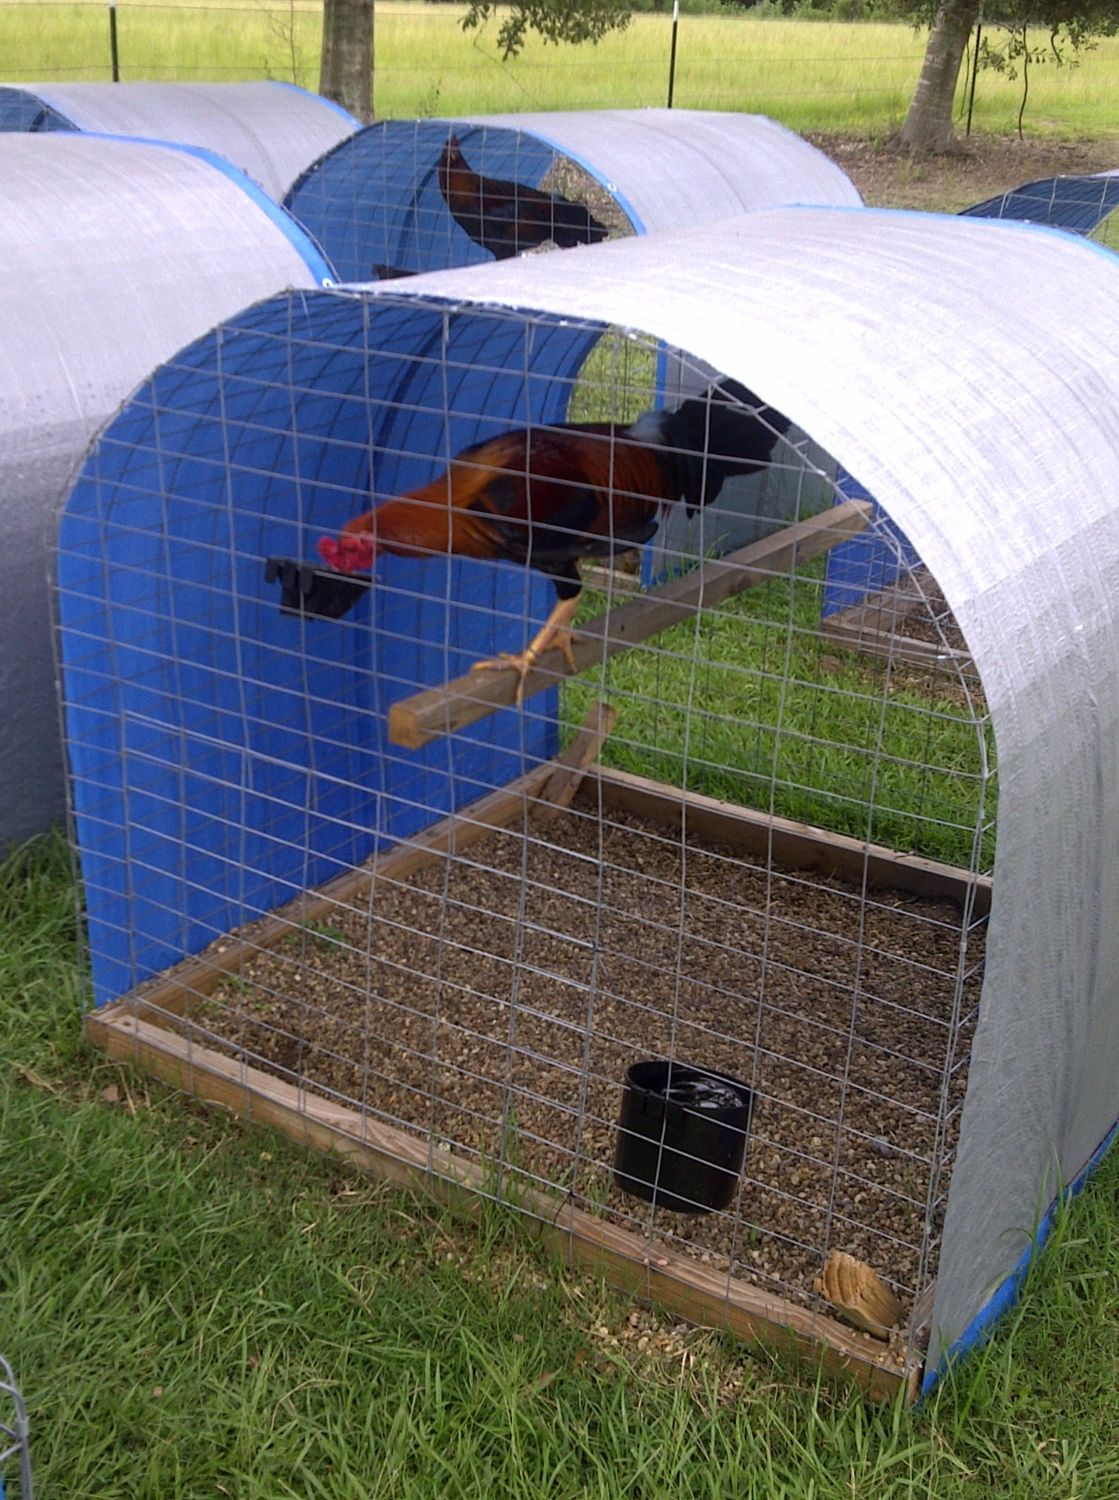 Gamefowl Pens For Sale http://www.backyardchickens.com/t/106767/show-off-your-games/3930